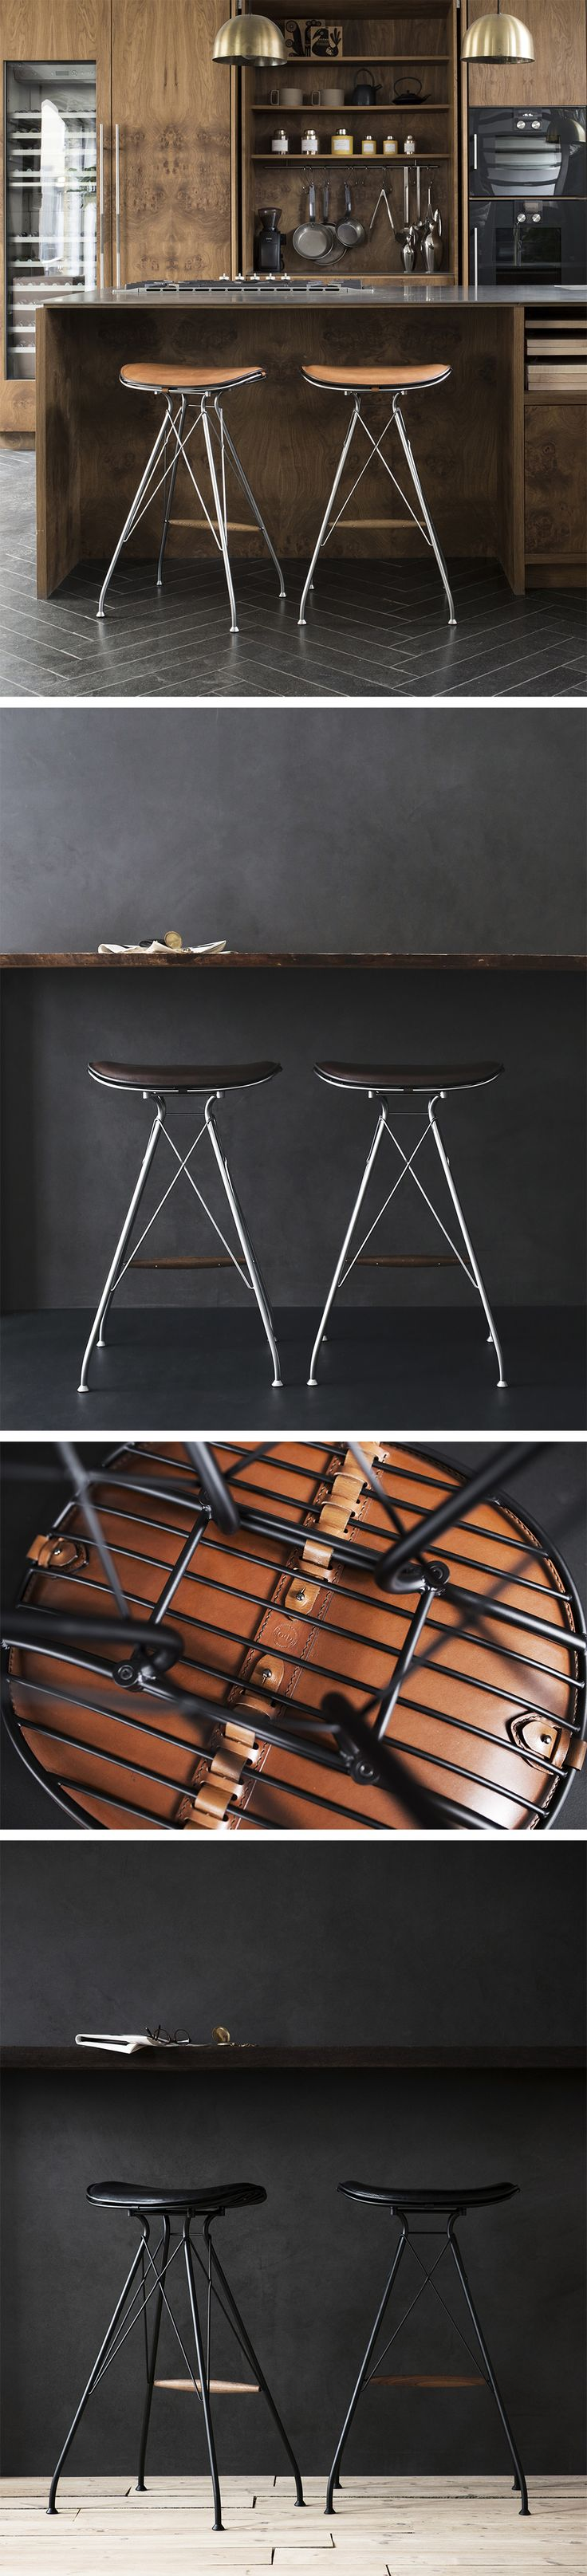 78 best stool design images on pinterest stools bar stool and